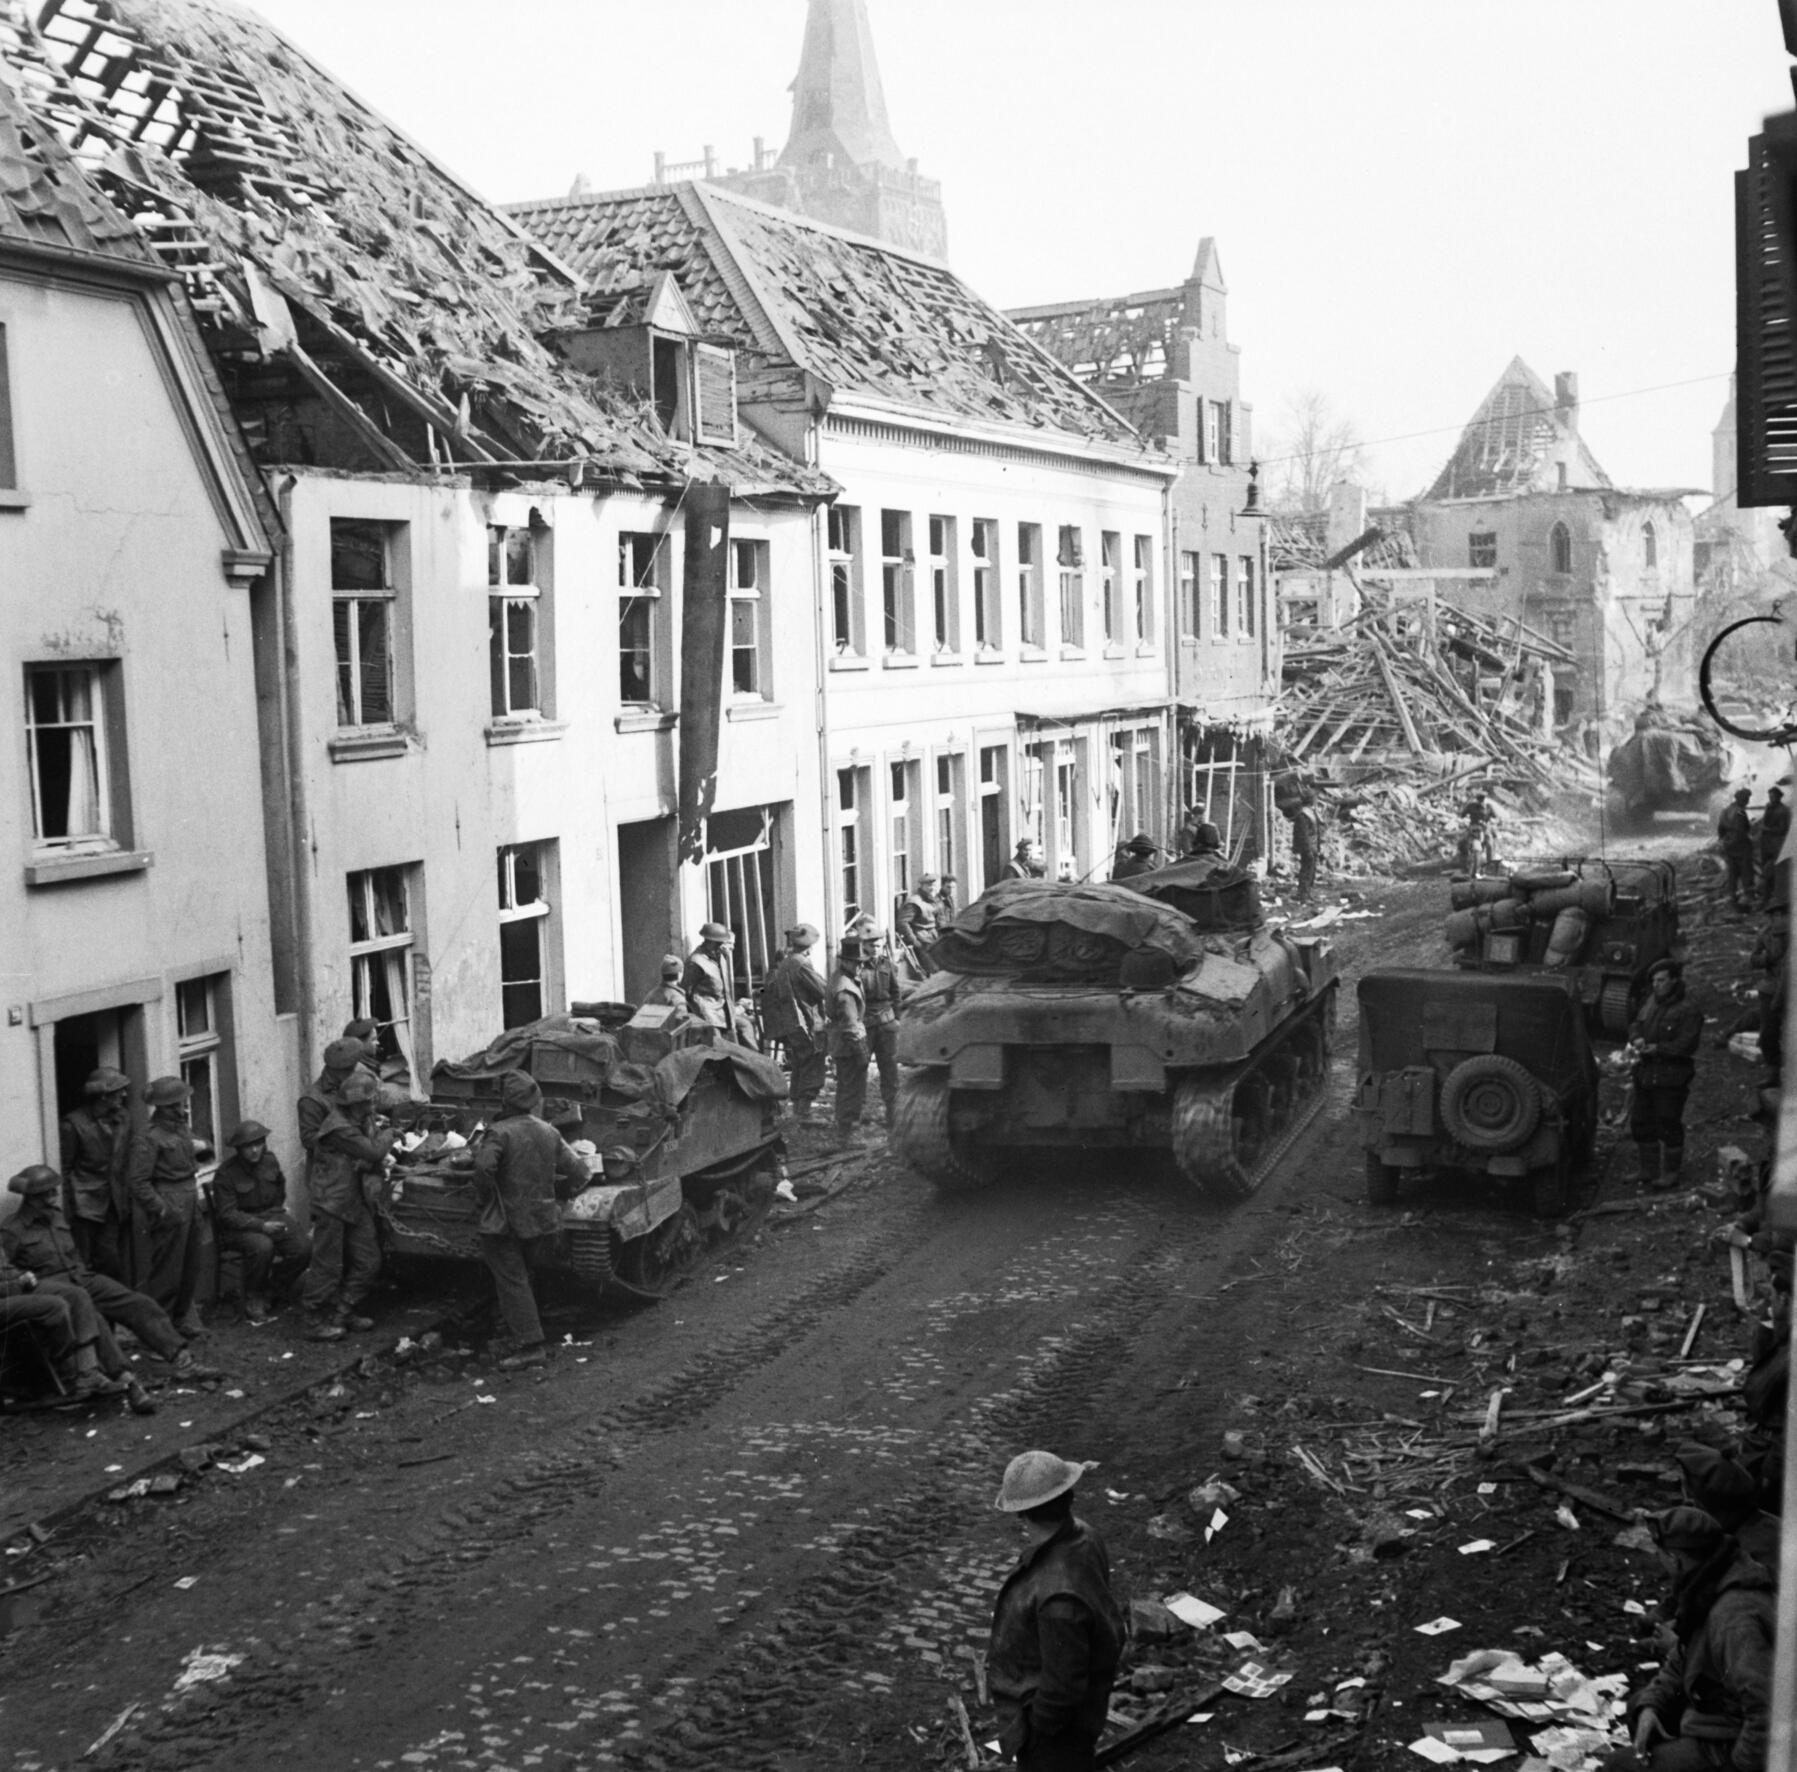 43rd Wessex Division troops in the main street of Xanten